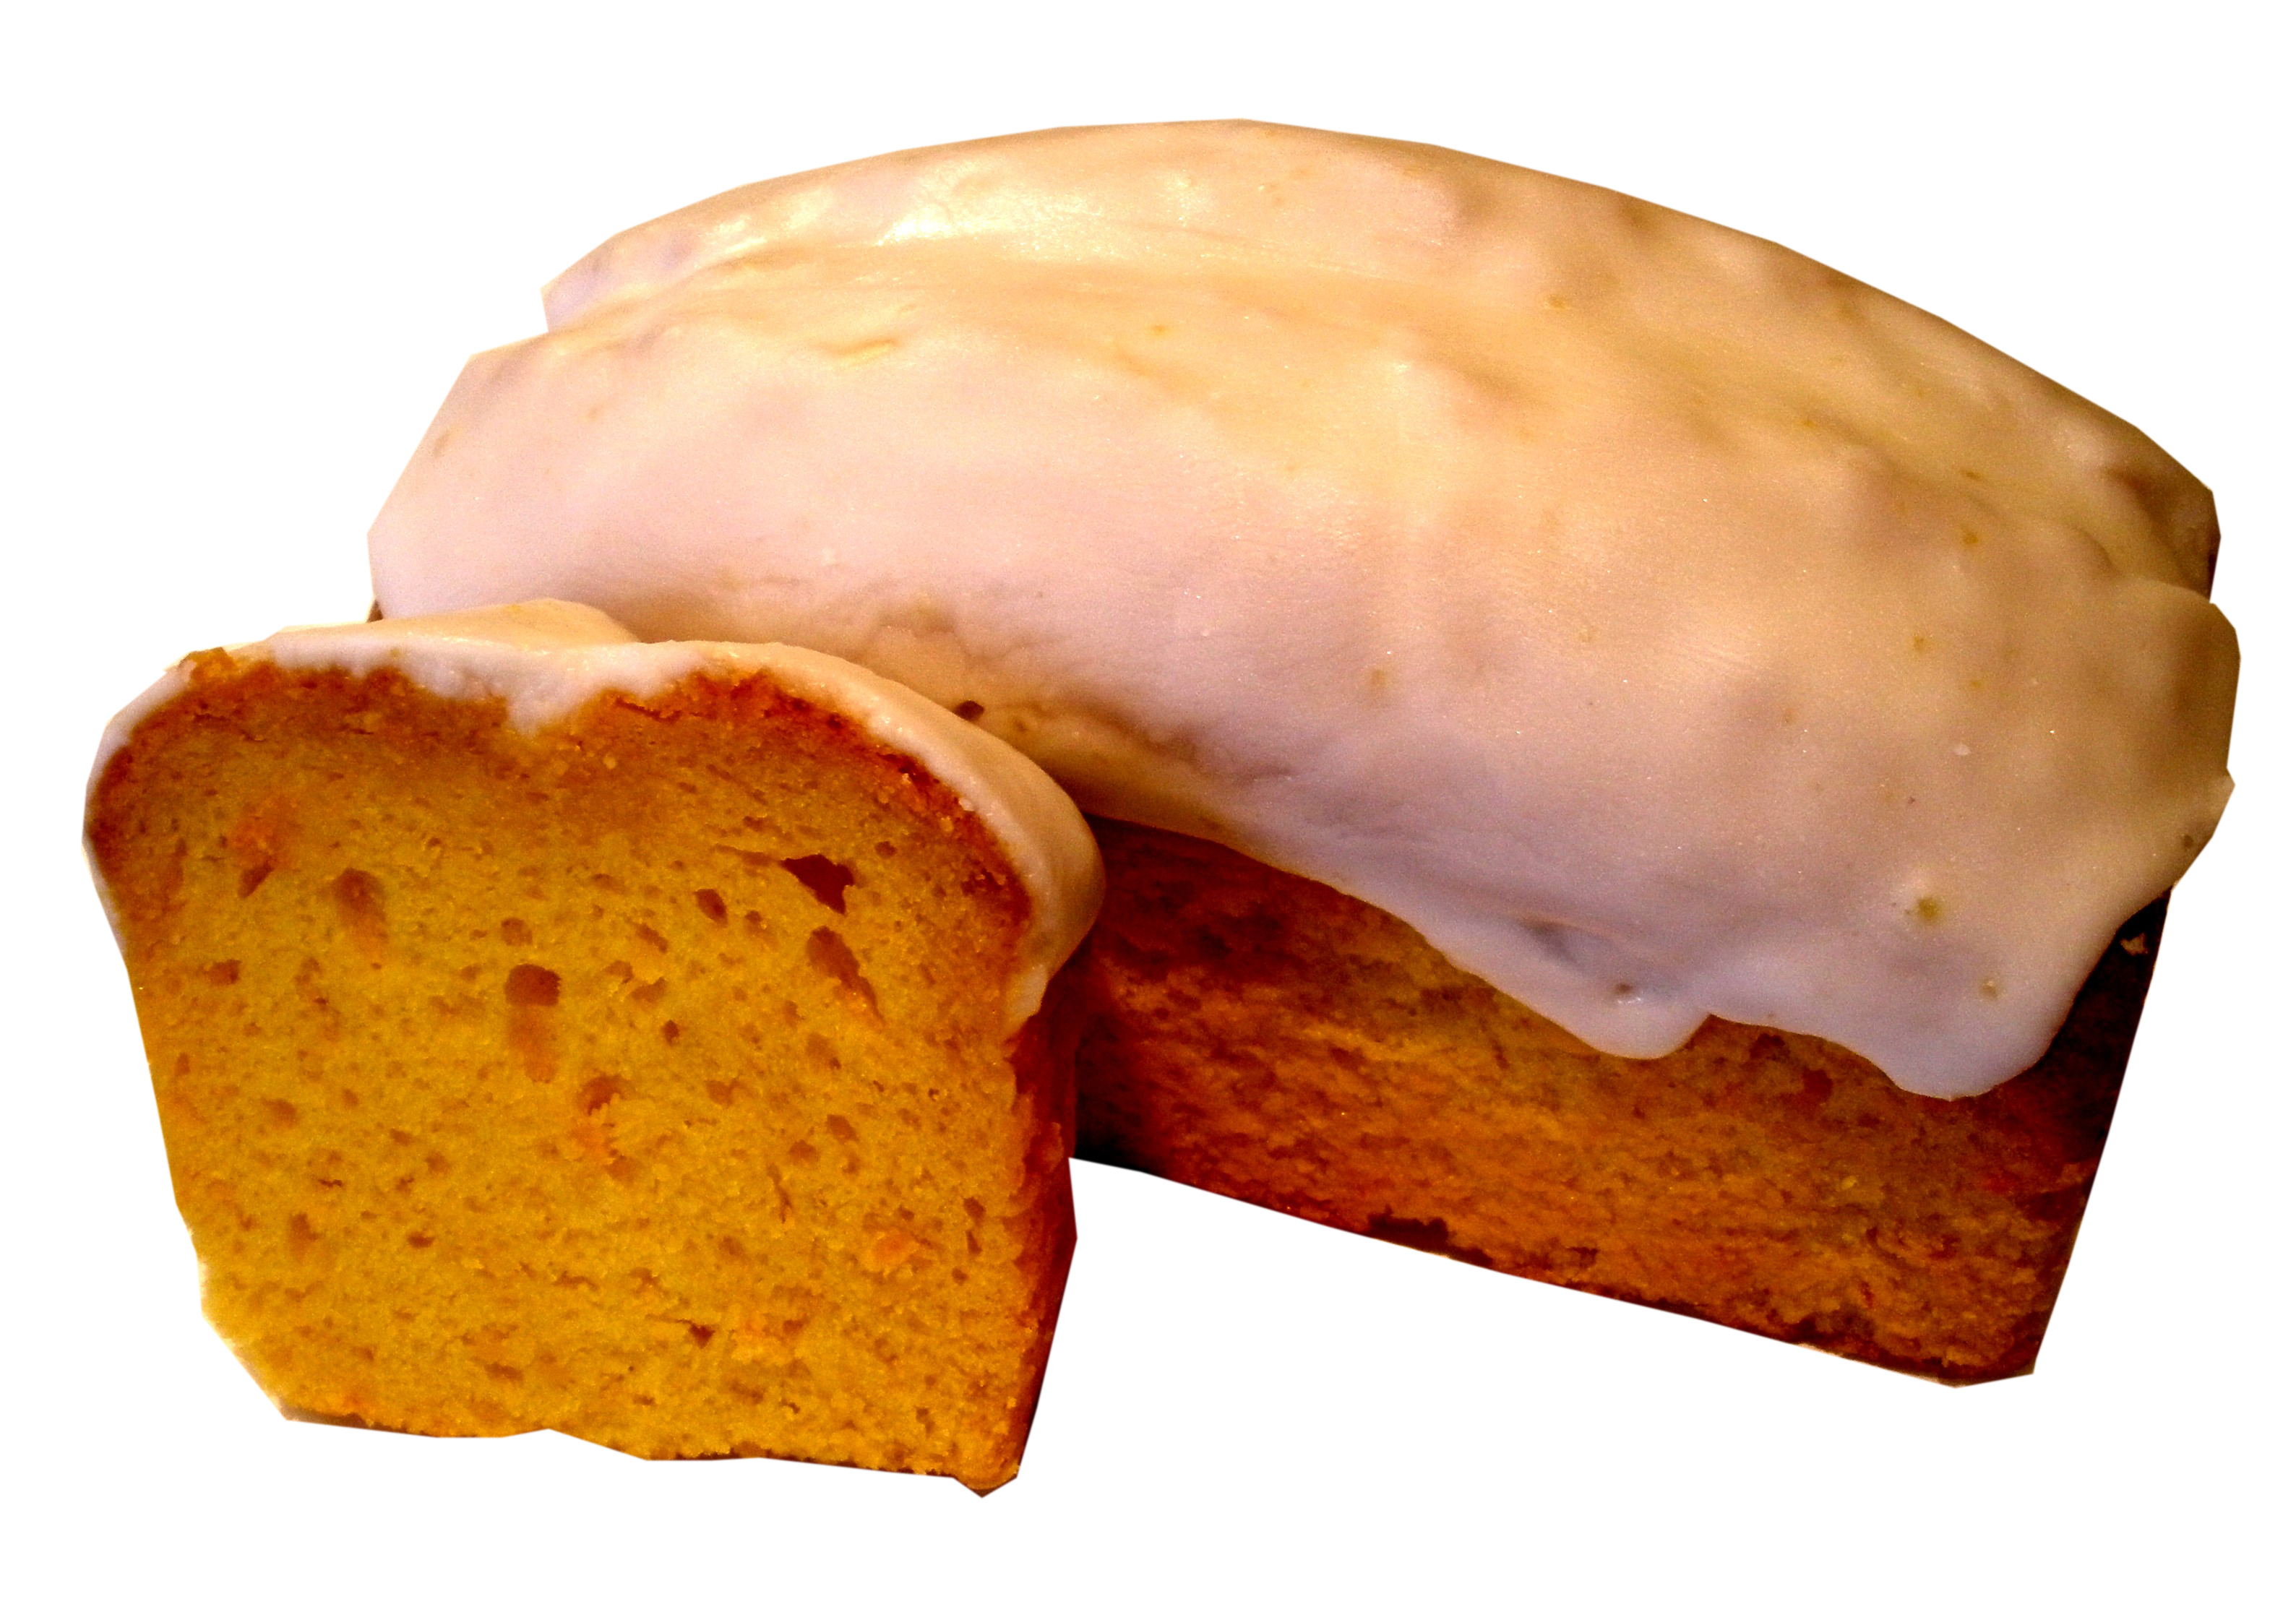 https://0901.nccdn.net/4_2/000/000/06c/bba/Lemon-Loaf-Clean.jpg